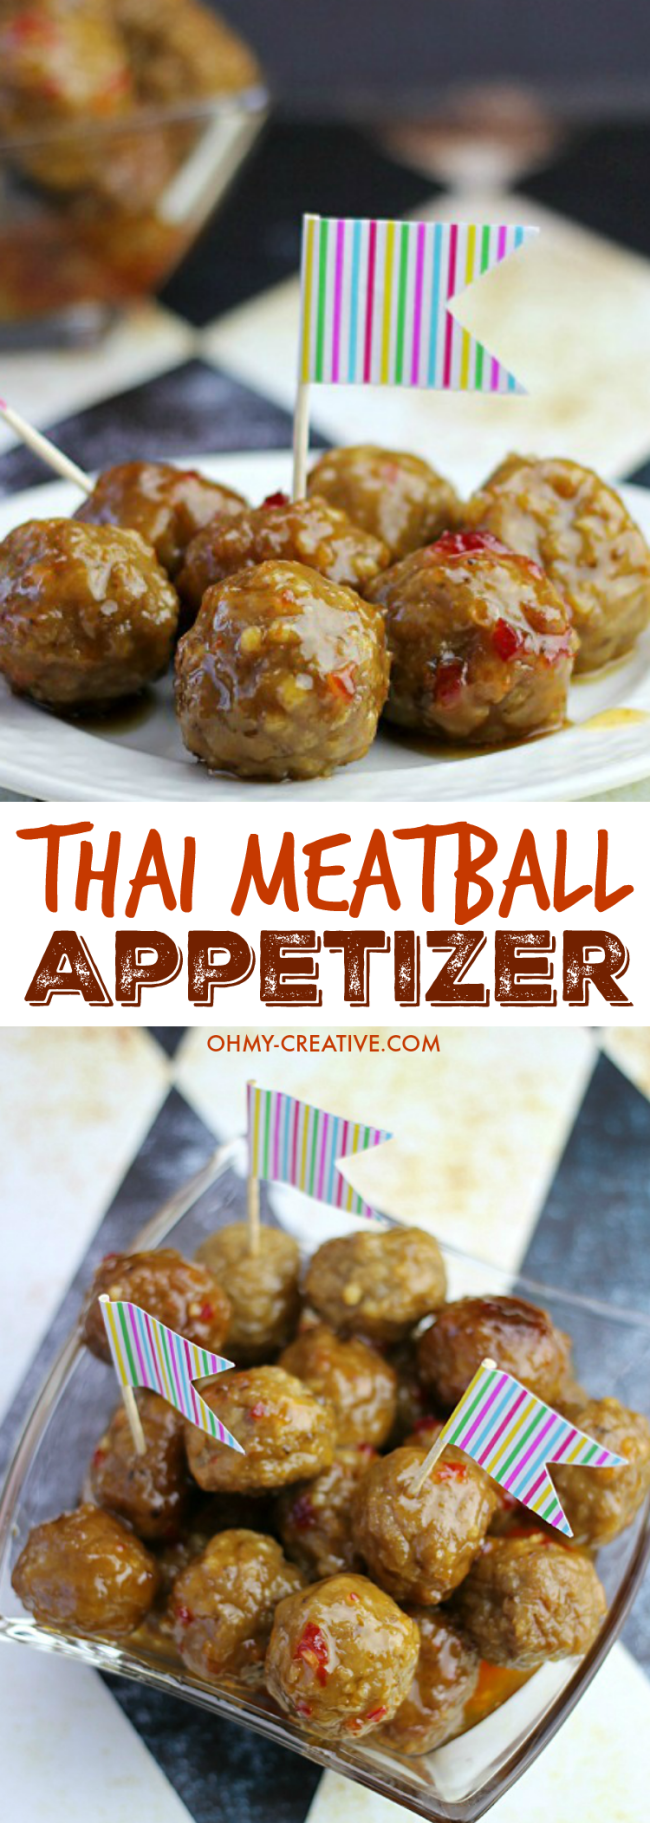 This Thai Meatballs Recipe is delicious Crock Pot dish perfect for any occasion! Great when hosting parties or to take on the go, this dish will deliver! | OHMY-CREATIVE.COM #meatballappetizer #thaimeatballs